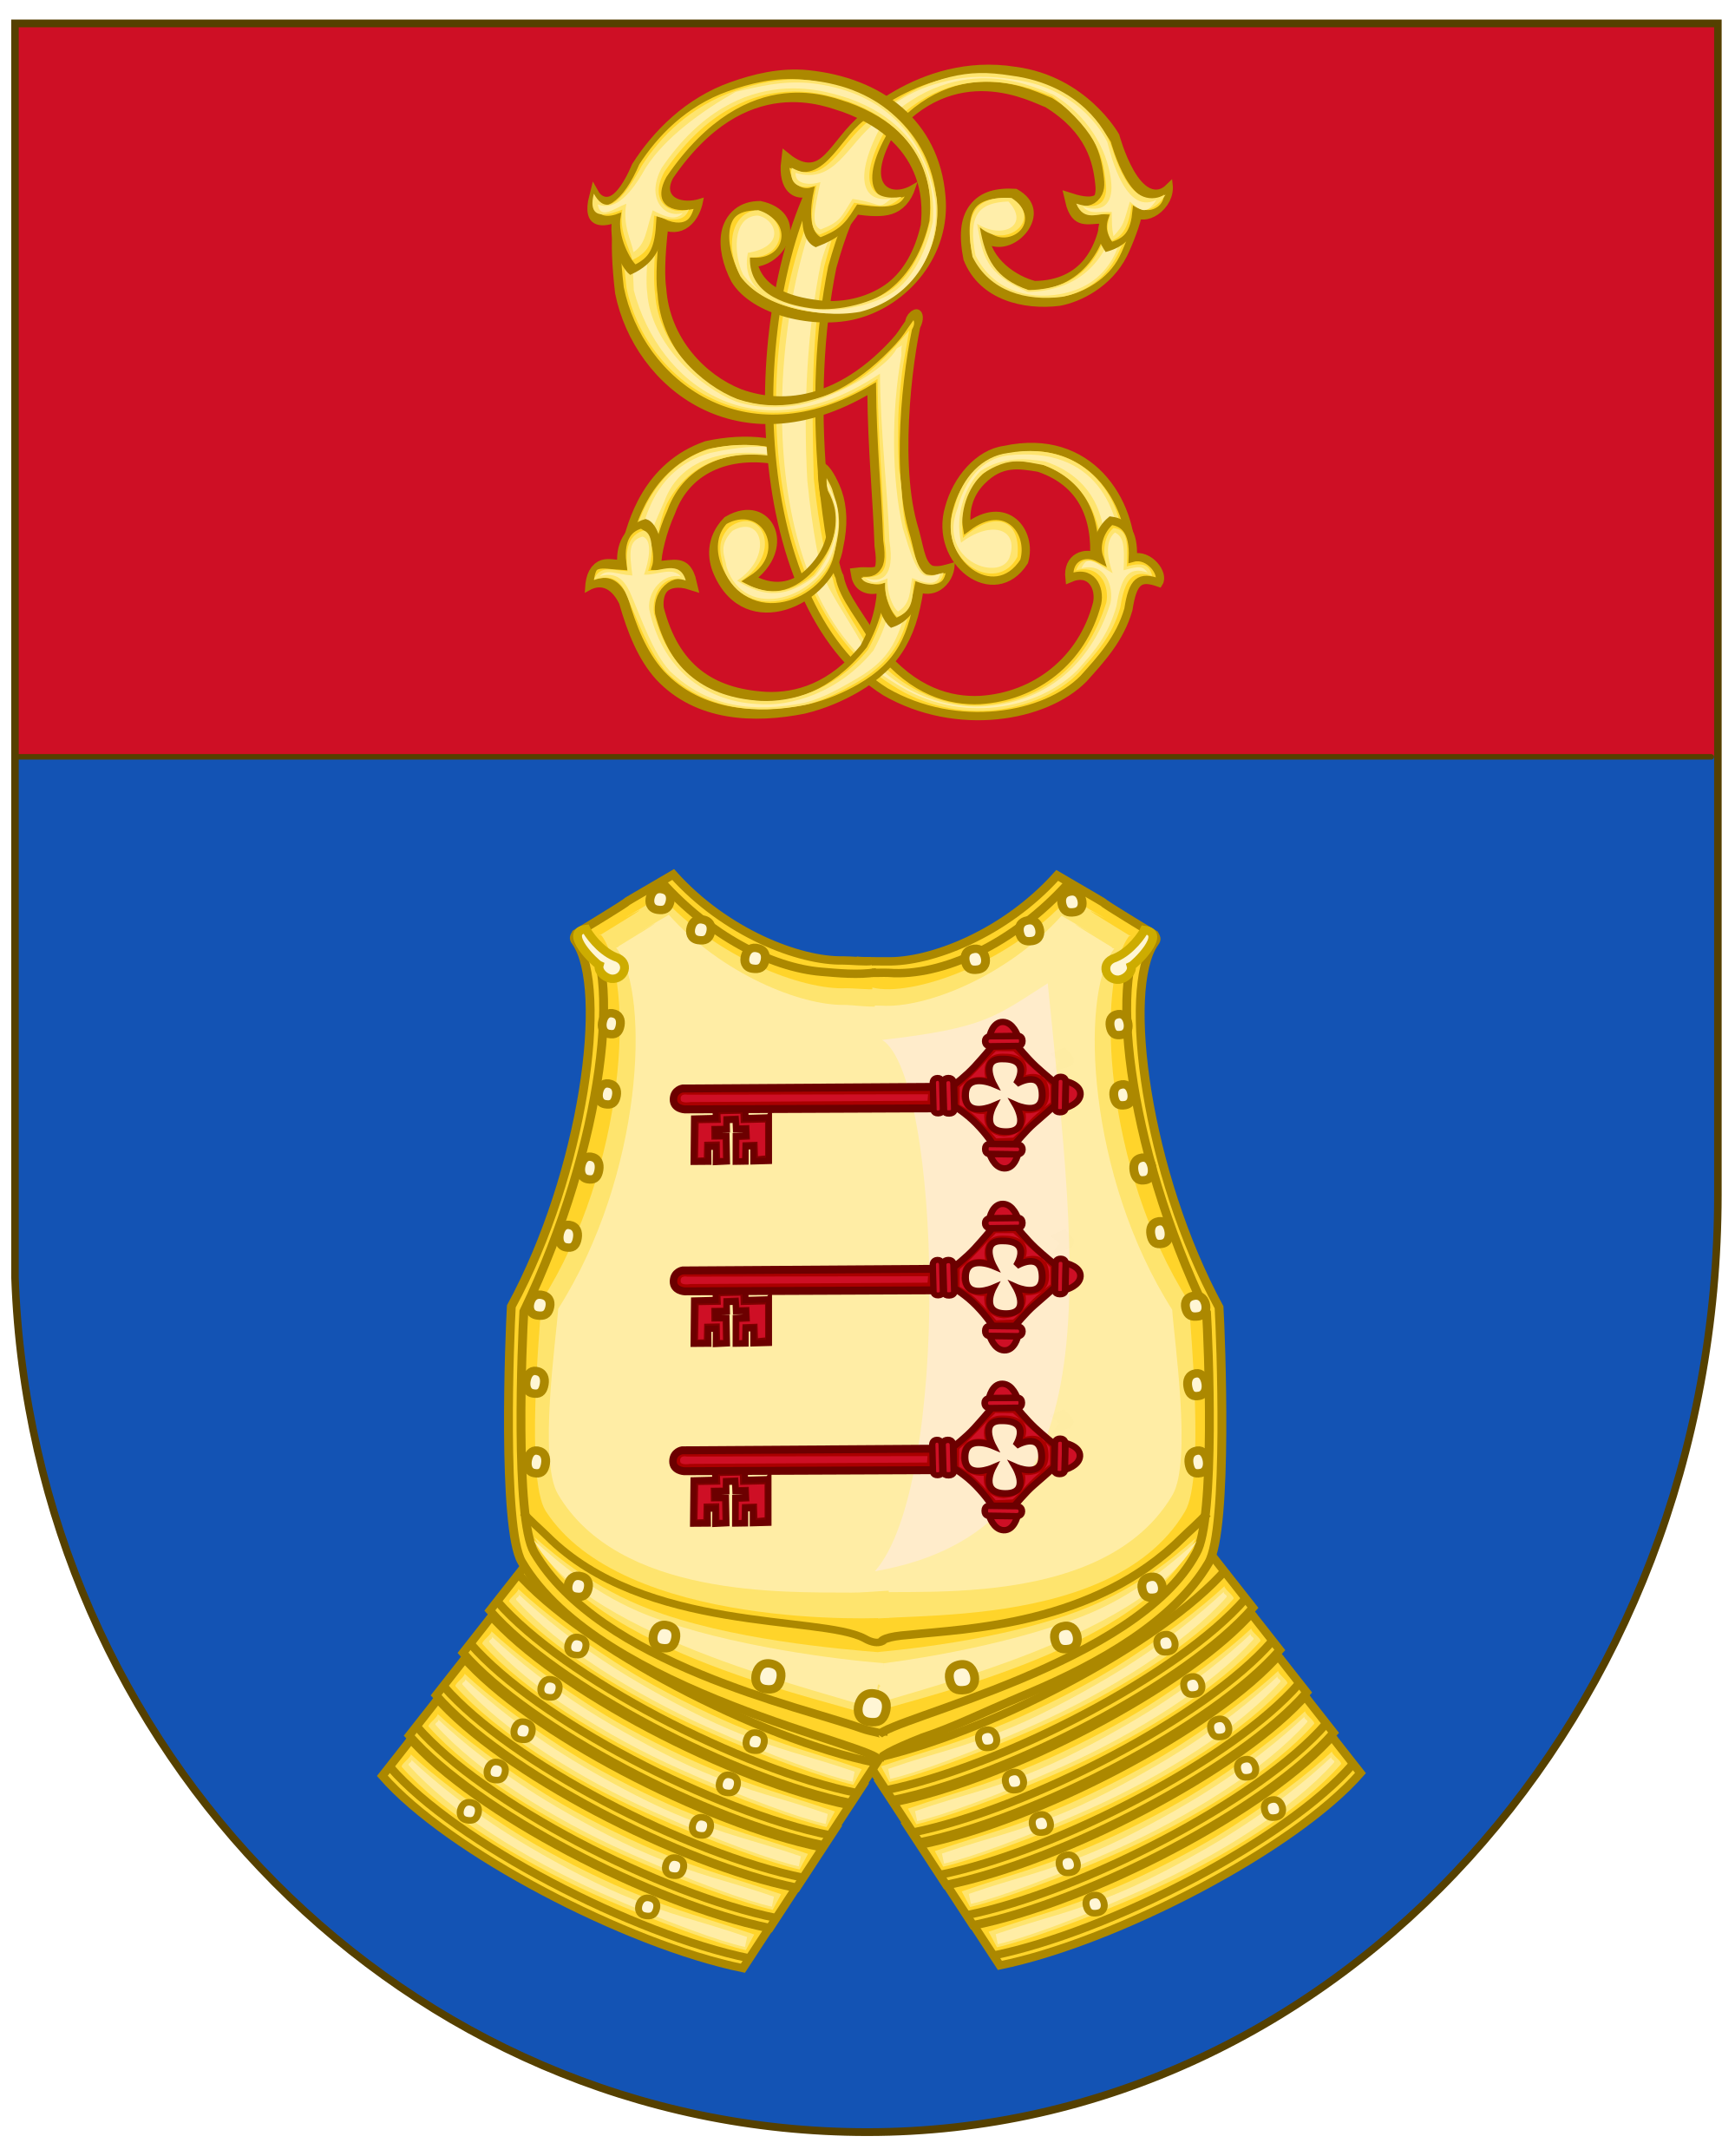 File:Graduate Badge of the Guardia Civil Protection and Security.